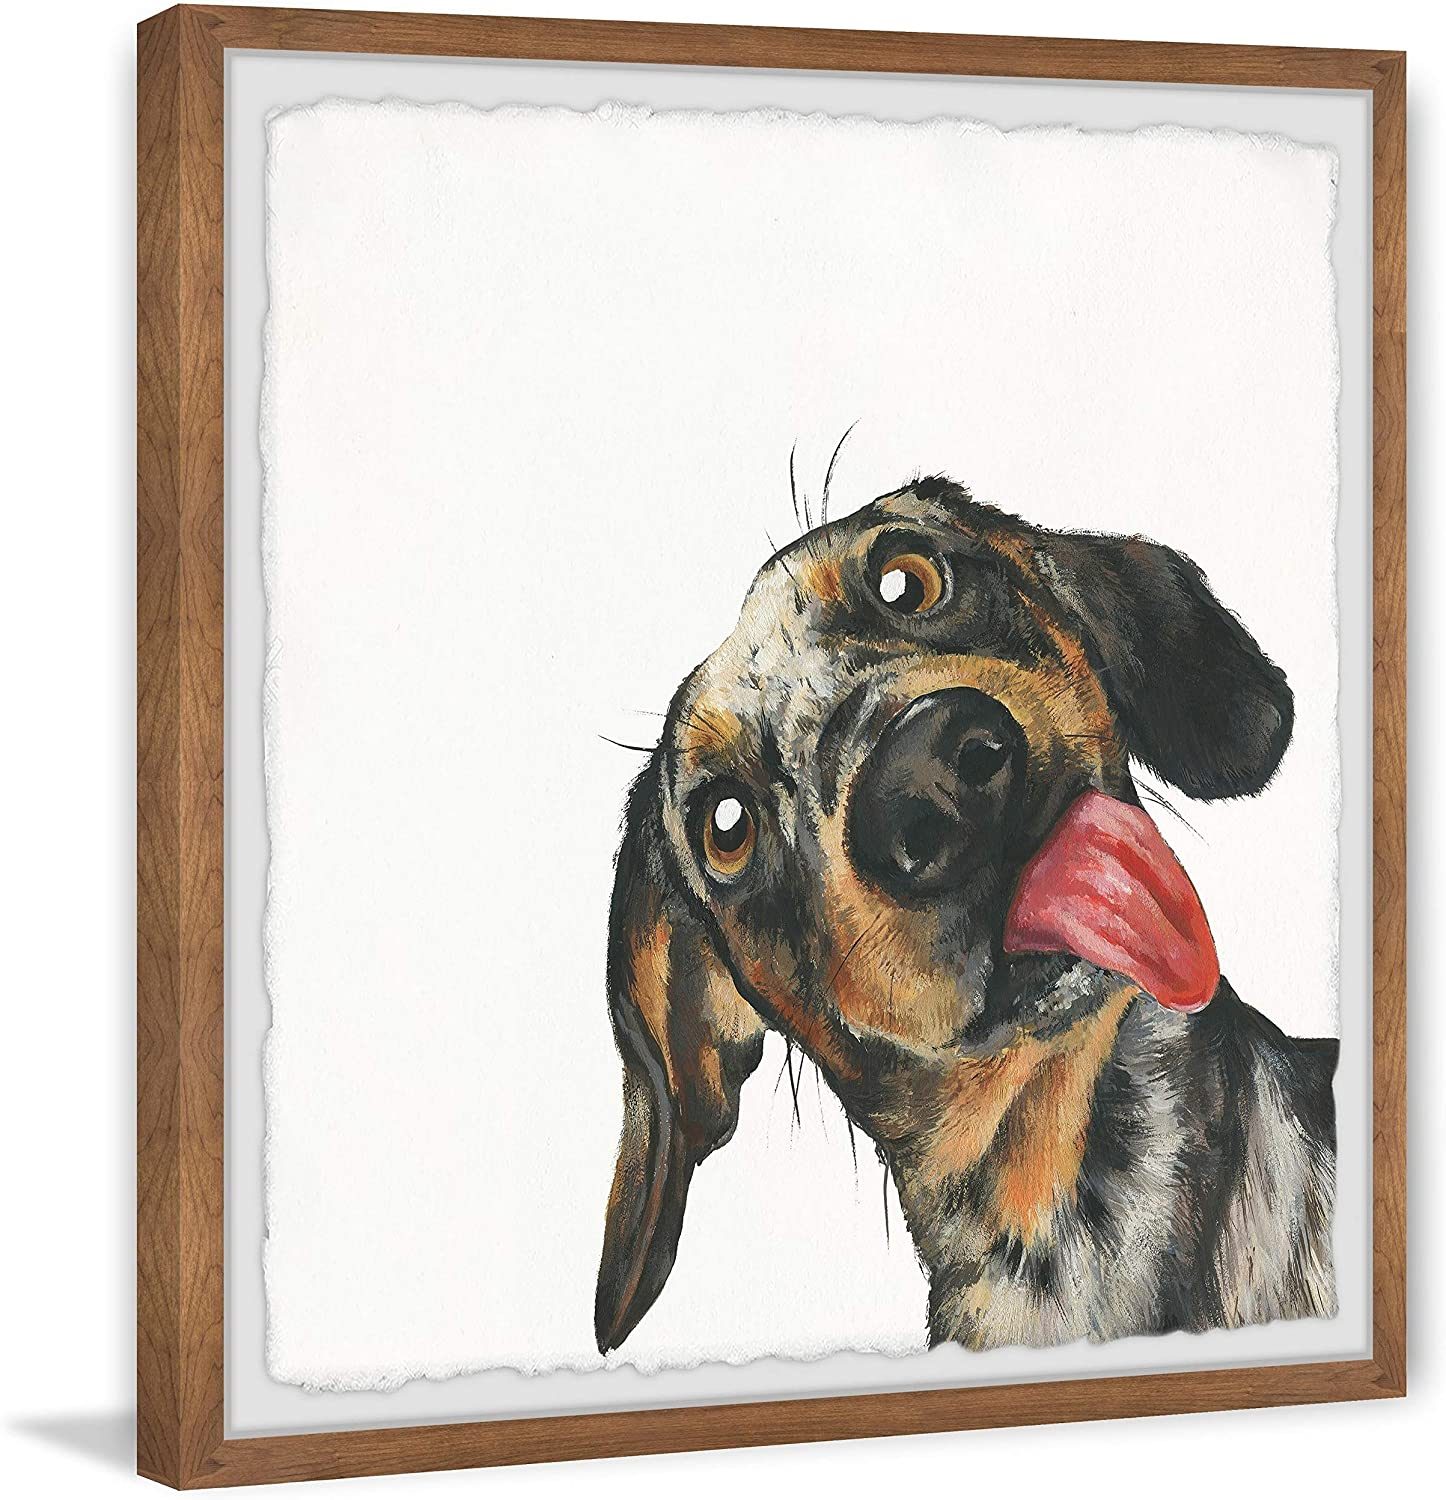 Marmont Animer and price revision Hill - Handmade Hilarious Framed x 32 Print Overseas parallel import regular item Dog